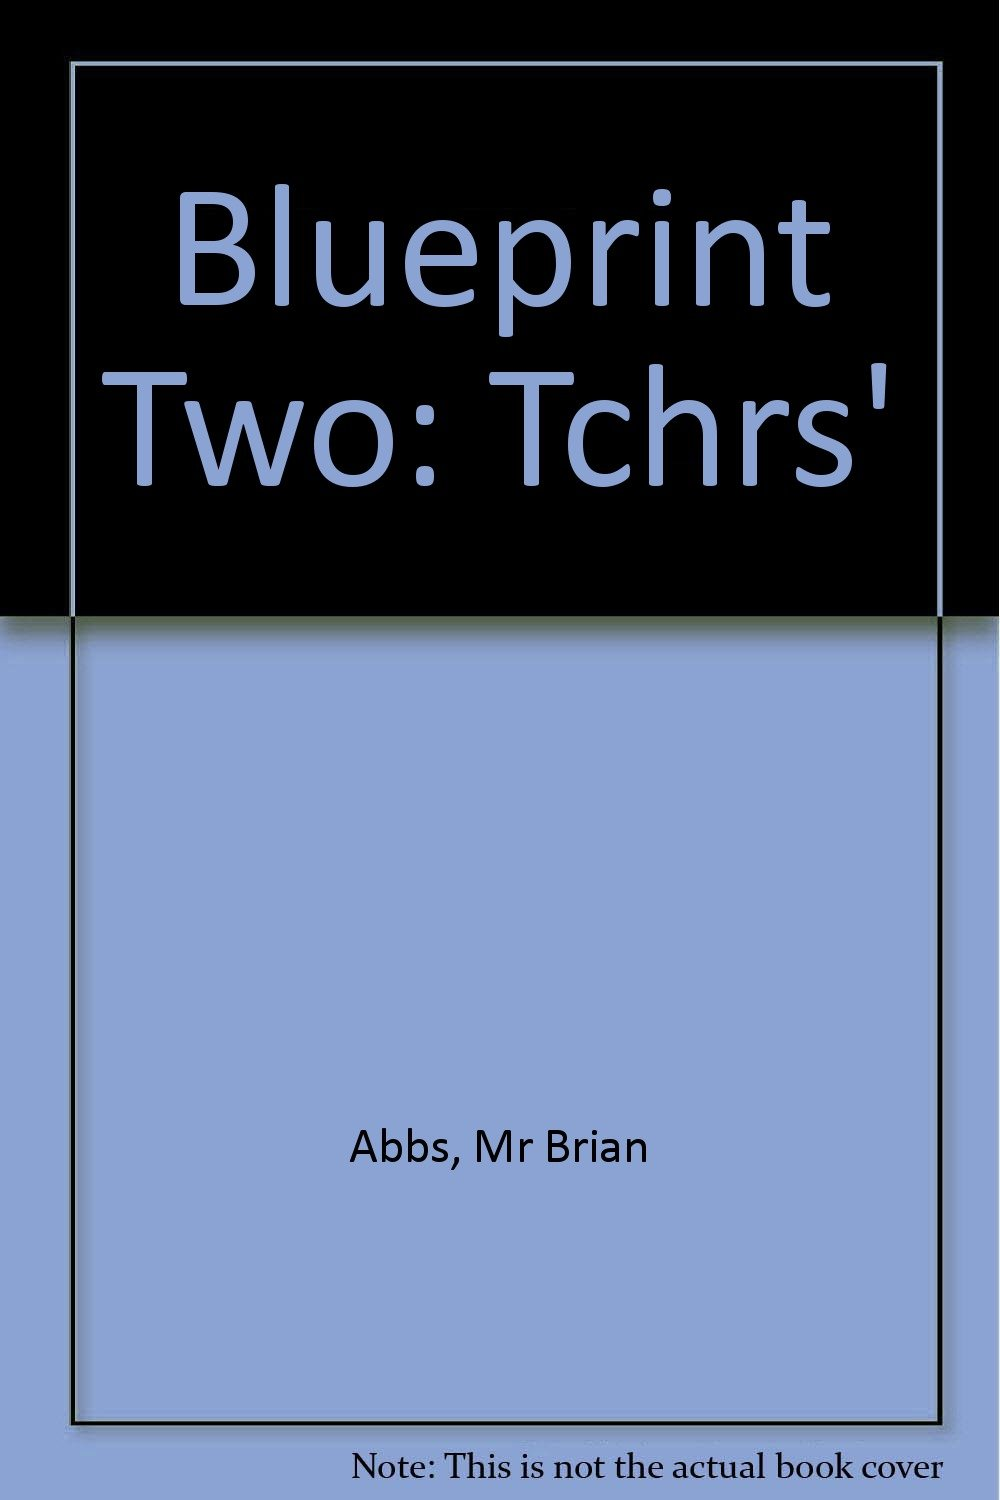 Blueprint teachers book 2 brian abbs ingrid freebairn blueprint teachers book 2 brian abbs ingrid freebairn 9780582075337 amazon books malvernweather Gallery